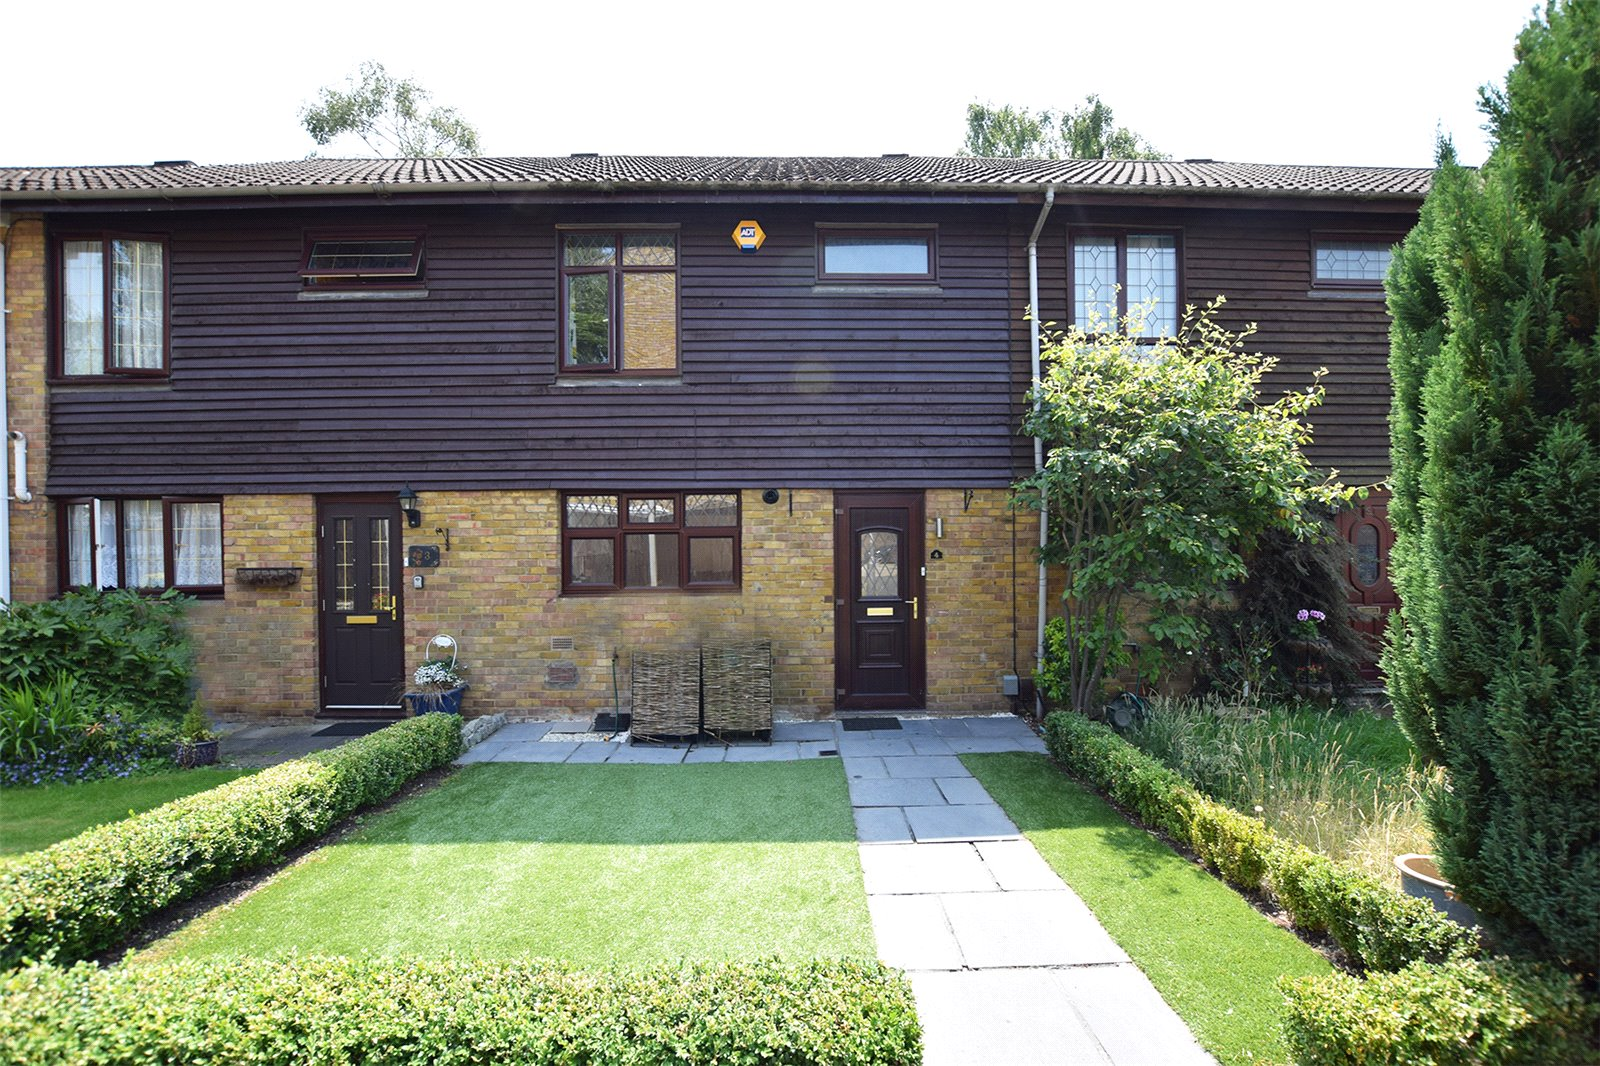 3 Bedrooms Terraced House for sale in Hillberry, Bracknell, Berkshire, RG12